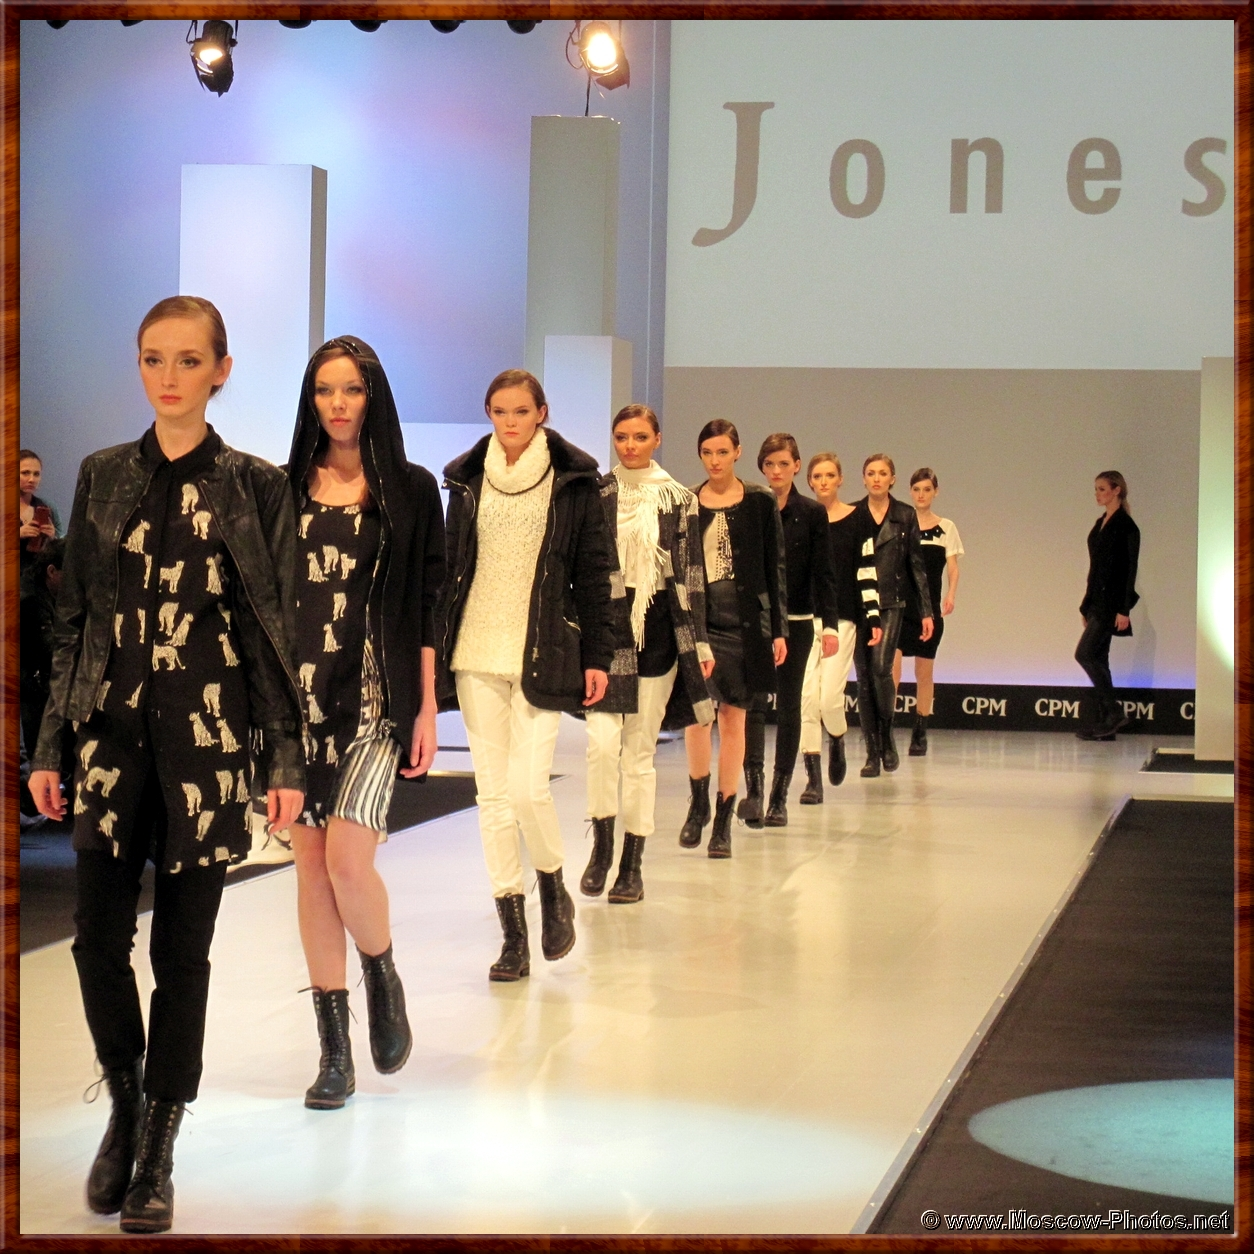 Jones Luxury Clothing at Collection Premiere Moscow (CPM)